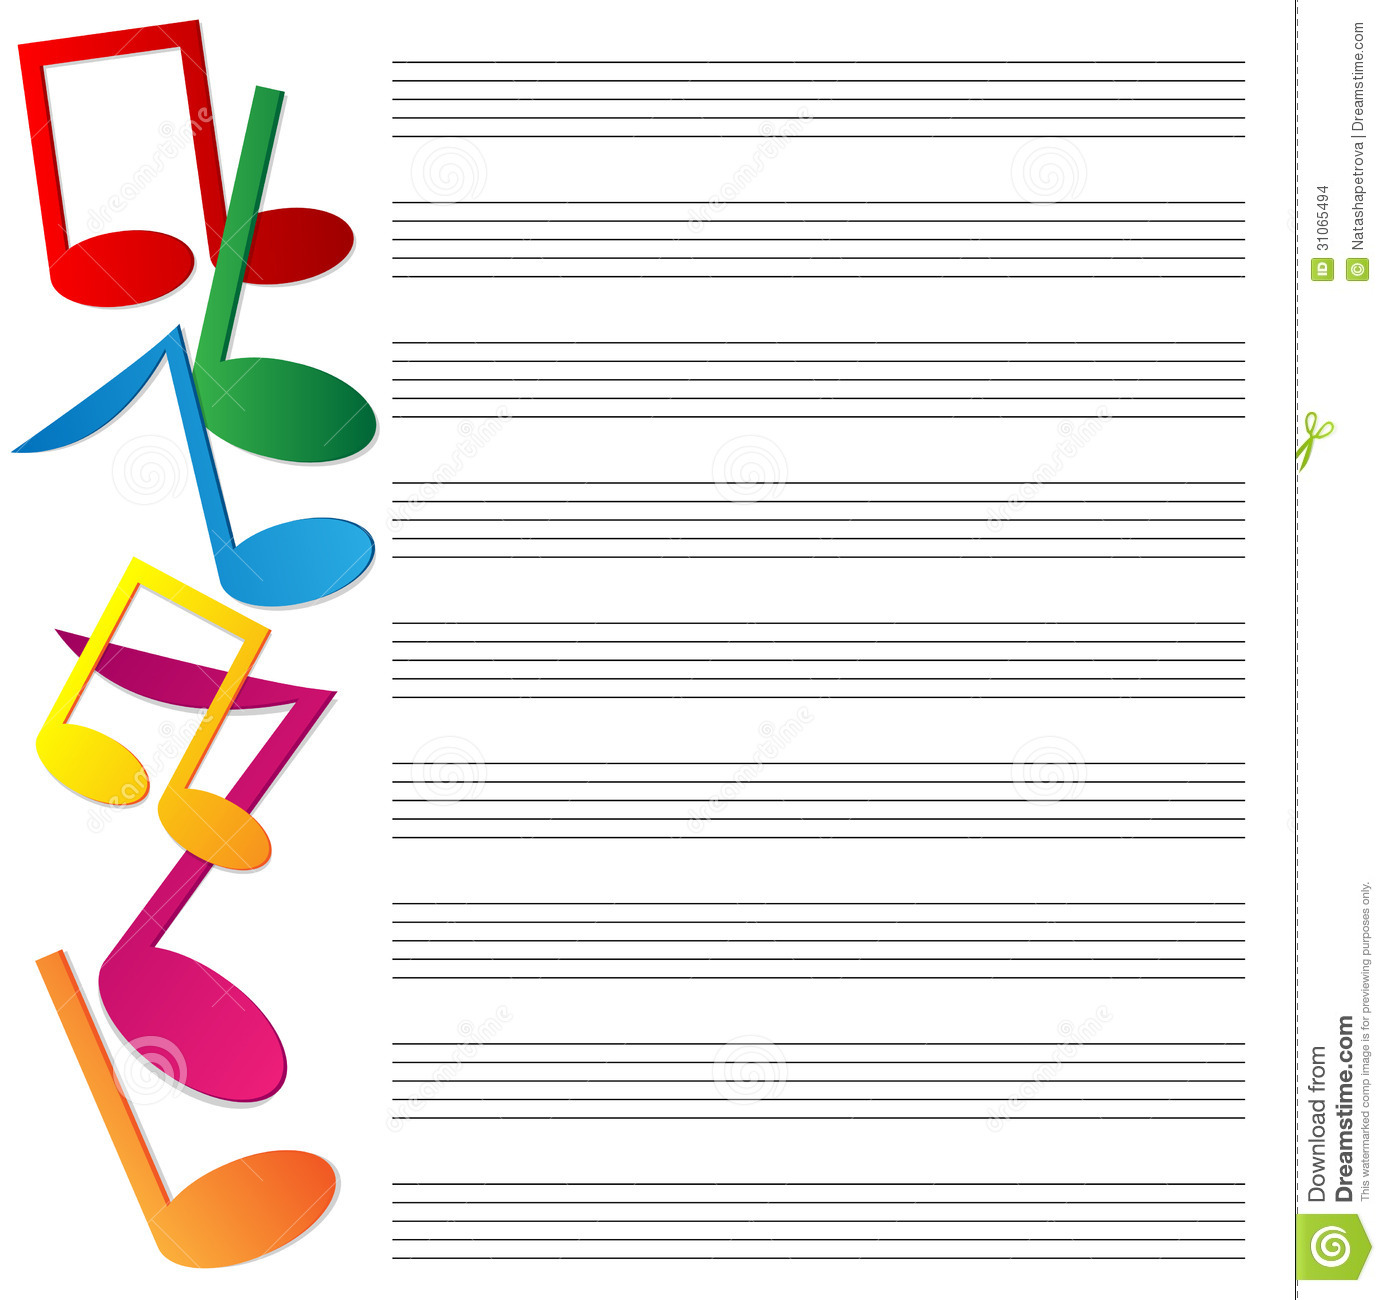 music paper 2 View essay - music paper 2 from muel 1832 at colorado name: date: february 20, 2015 assignment #2 - concert review goals of the assignment: 1) to find out what concerts are happening in your local.